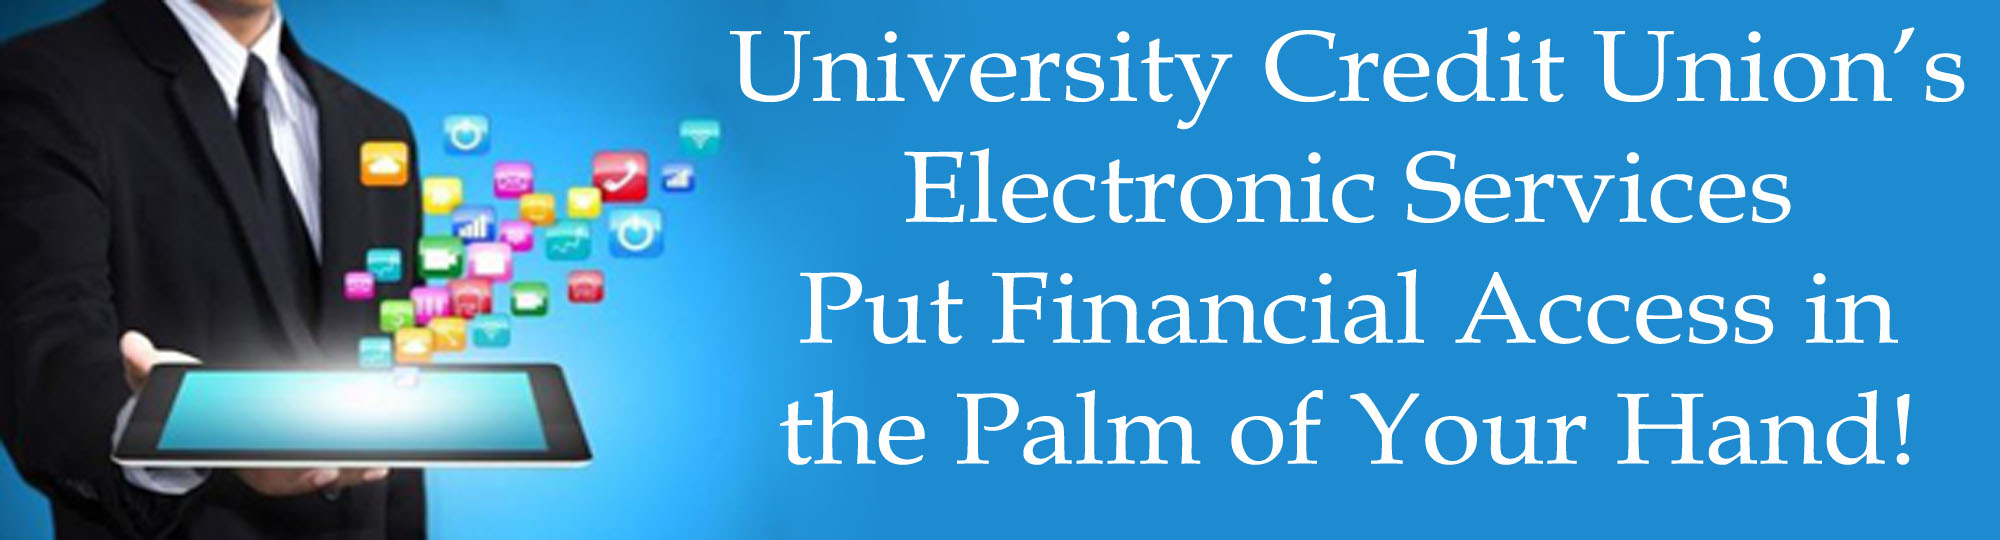 UCU's Electronic Services put financial access in the palm of your hand